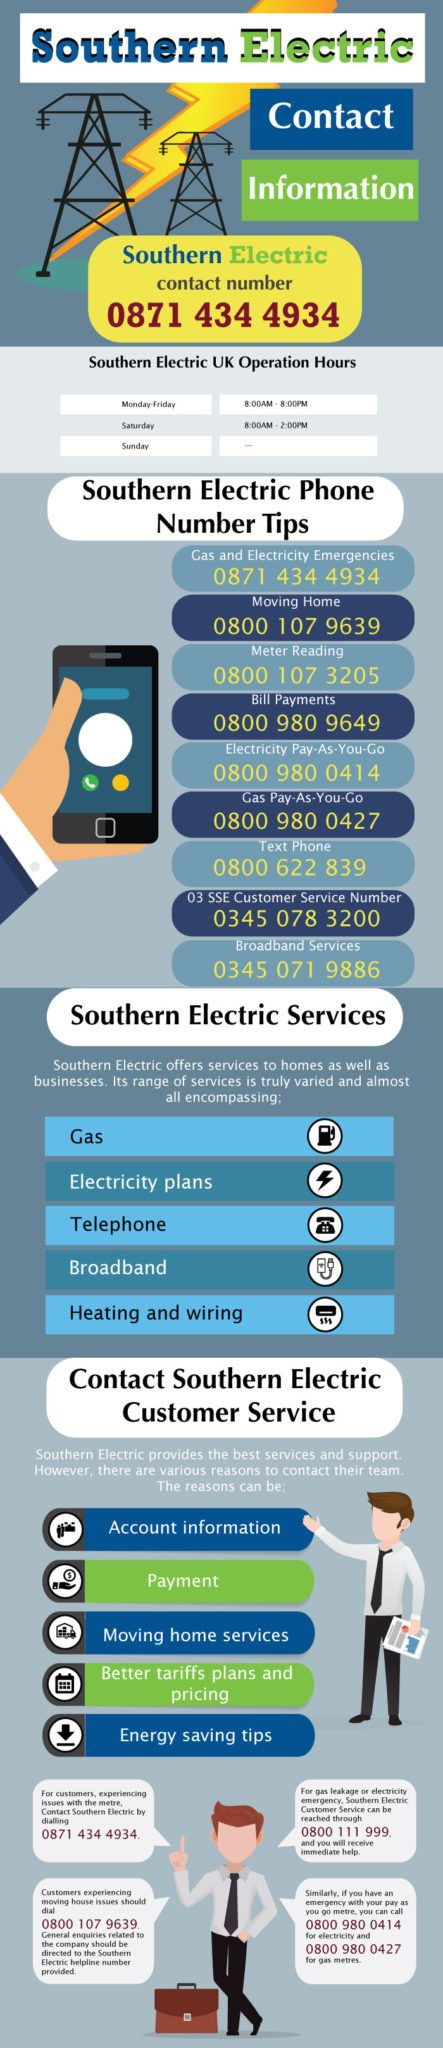 Southern Electric Contact Number